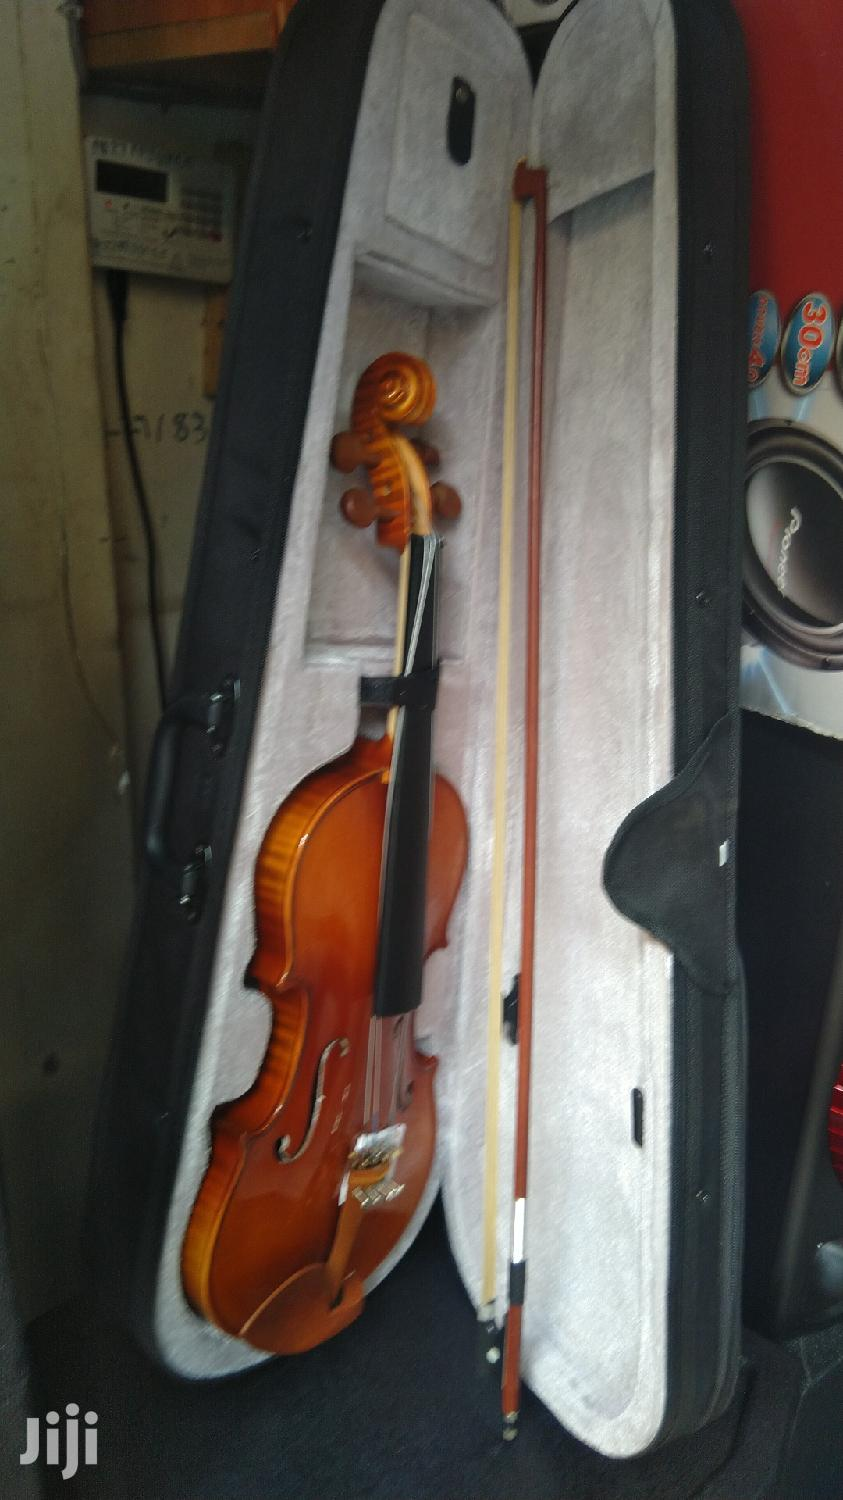 USA 4/4 Maple Leaf Violin | Musical Instruments & Gear for sale in Nairobi Central, Nairobi, Kenya